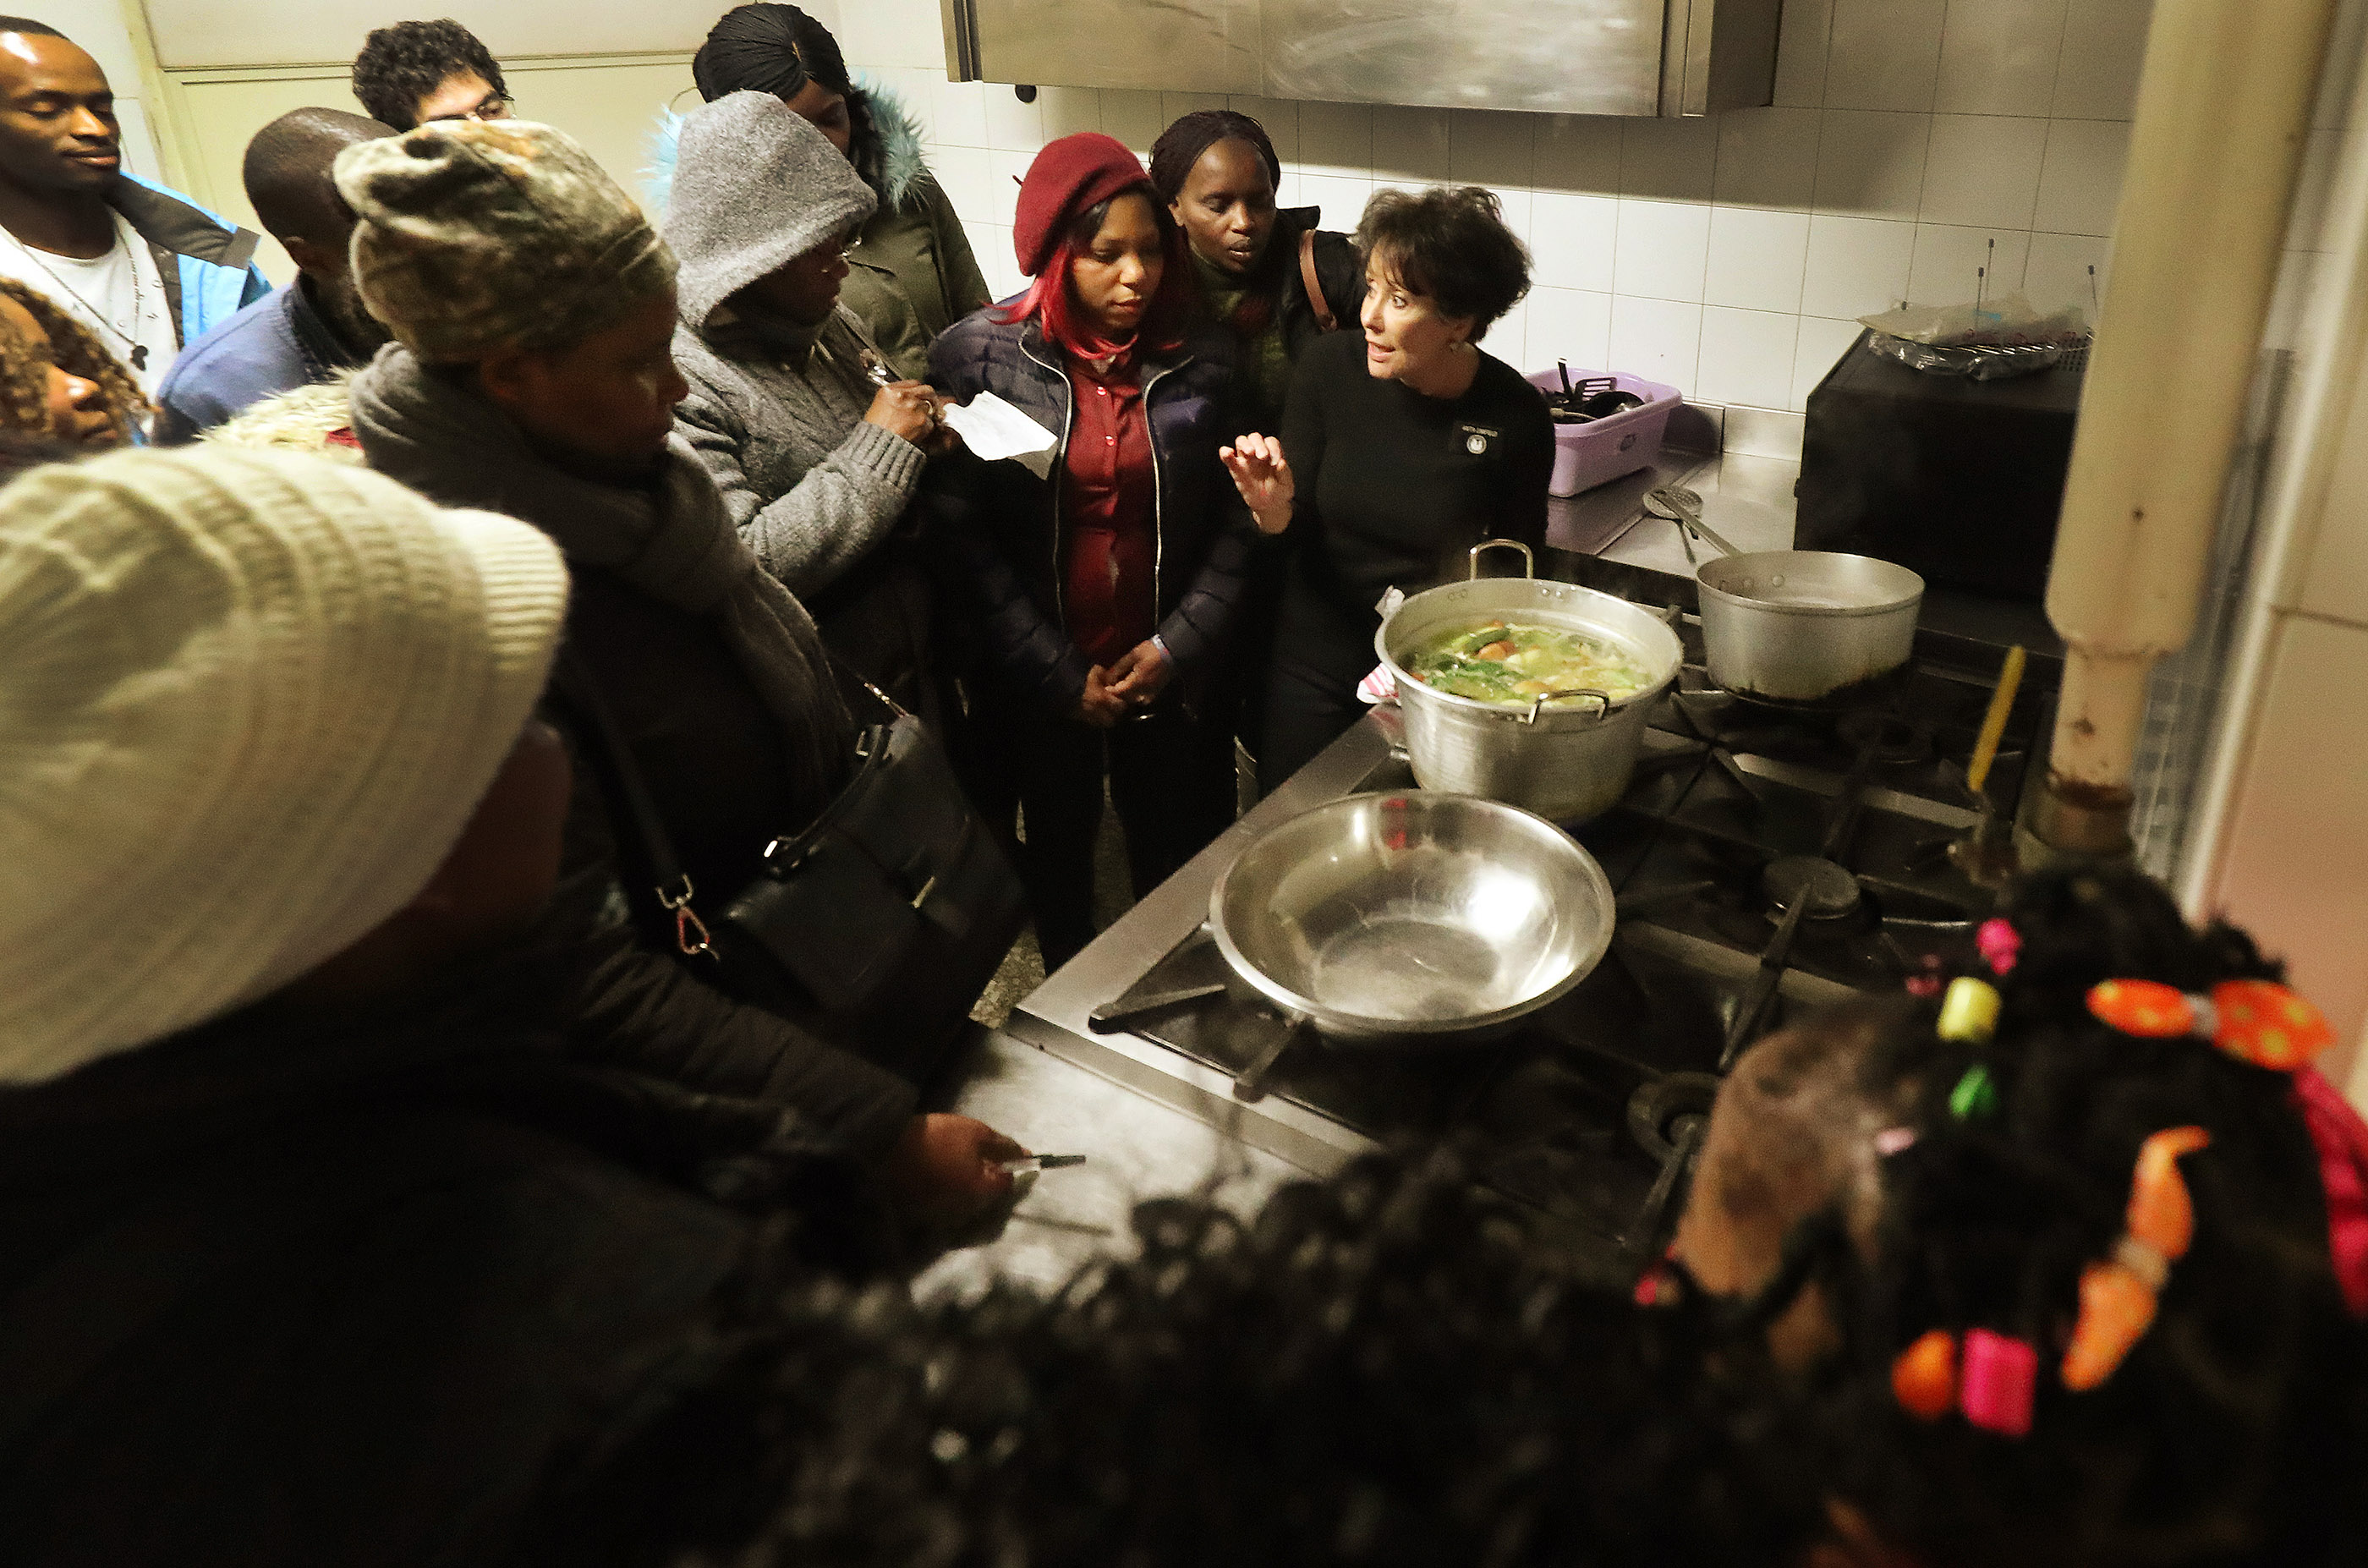 Latter-day Saint Charities missionary Anita Canfield, right, teaches refugees during cooking class at St. Paul's Within the Walls Episcopal Church in Rome, Italy on Thursday, March 7, 2019. The Church of Jesus Christ of Latter-day Saints partners with the Catholic church to help refugees.